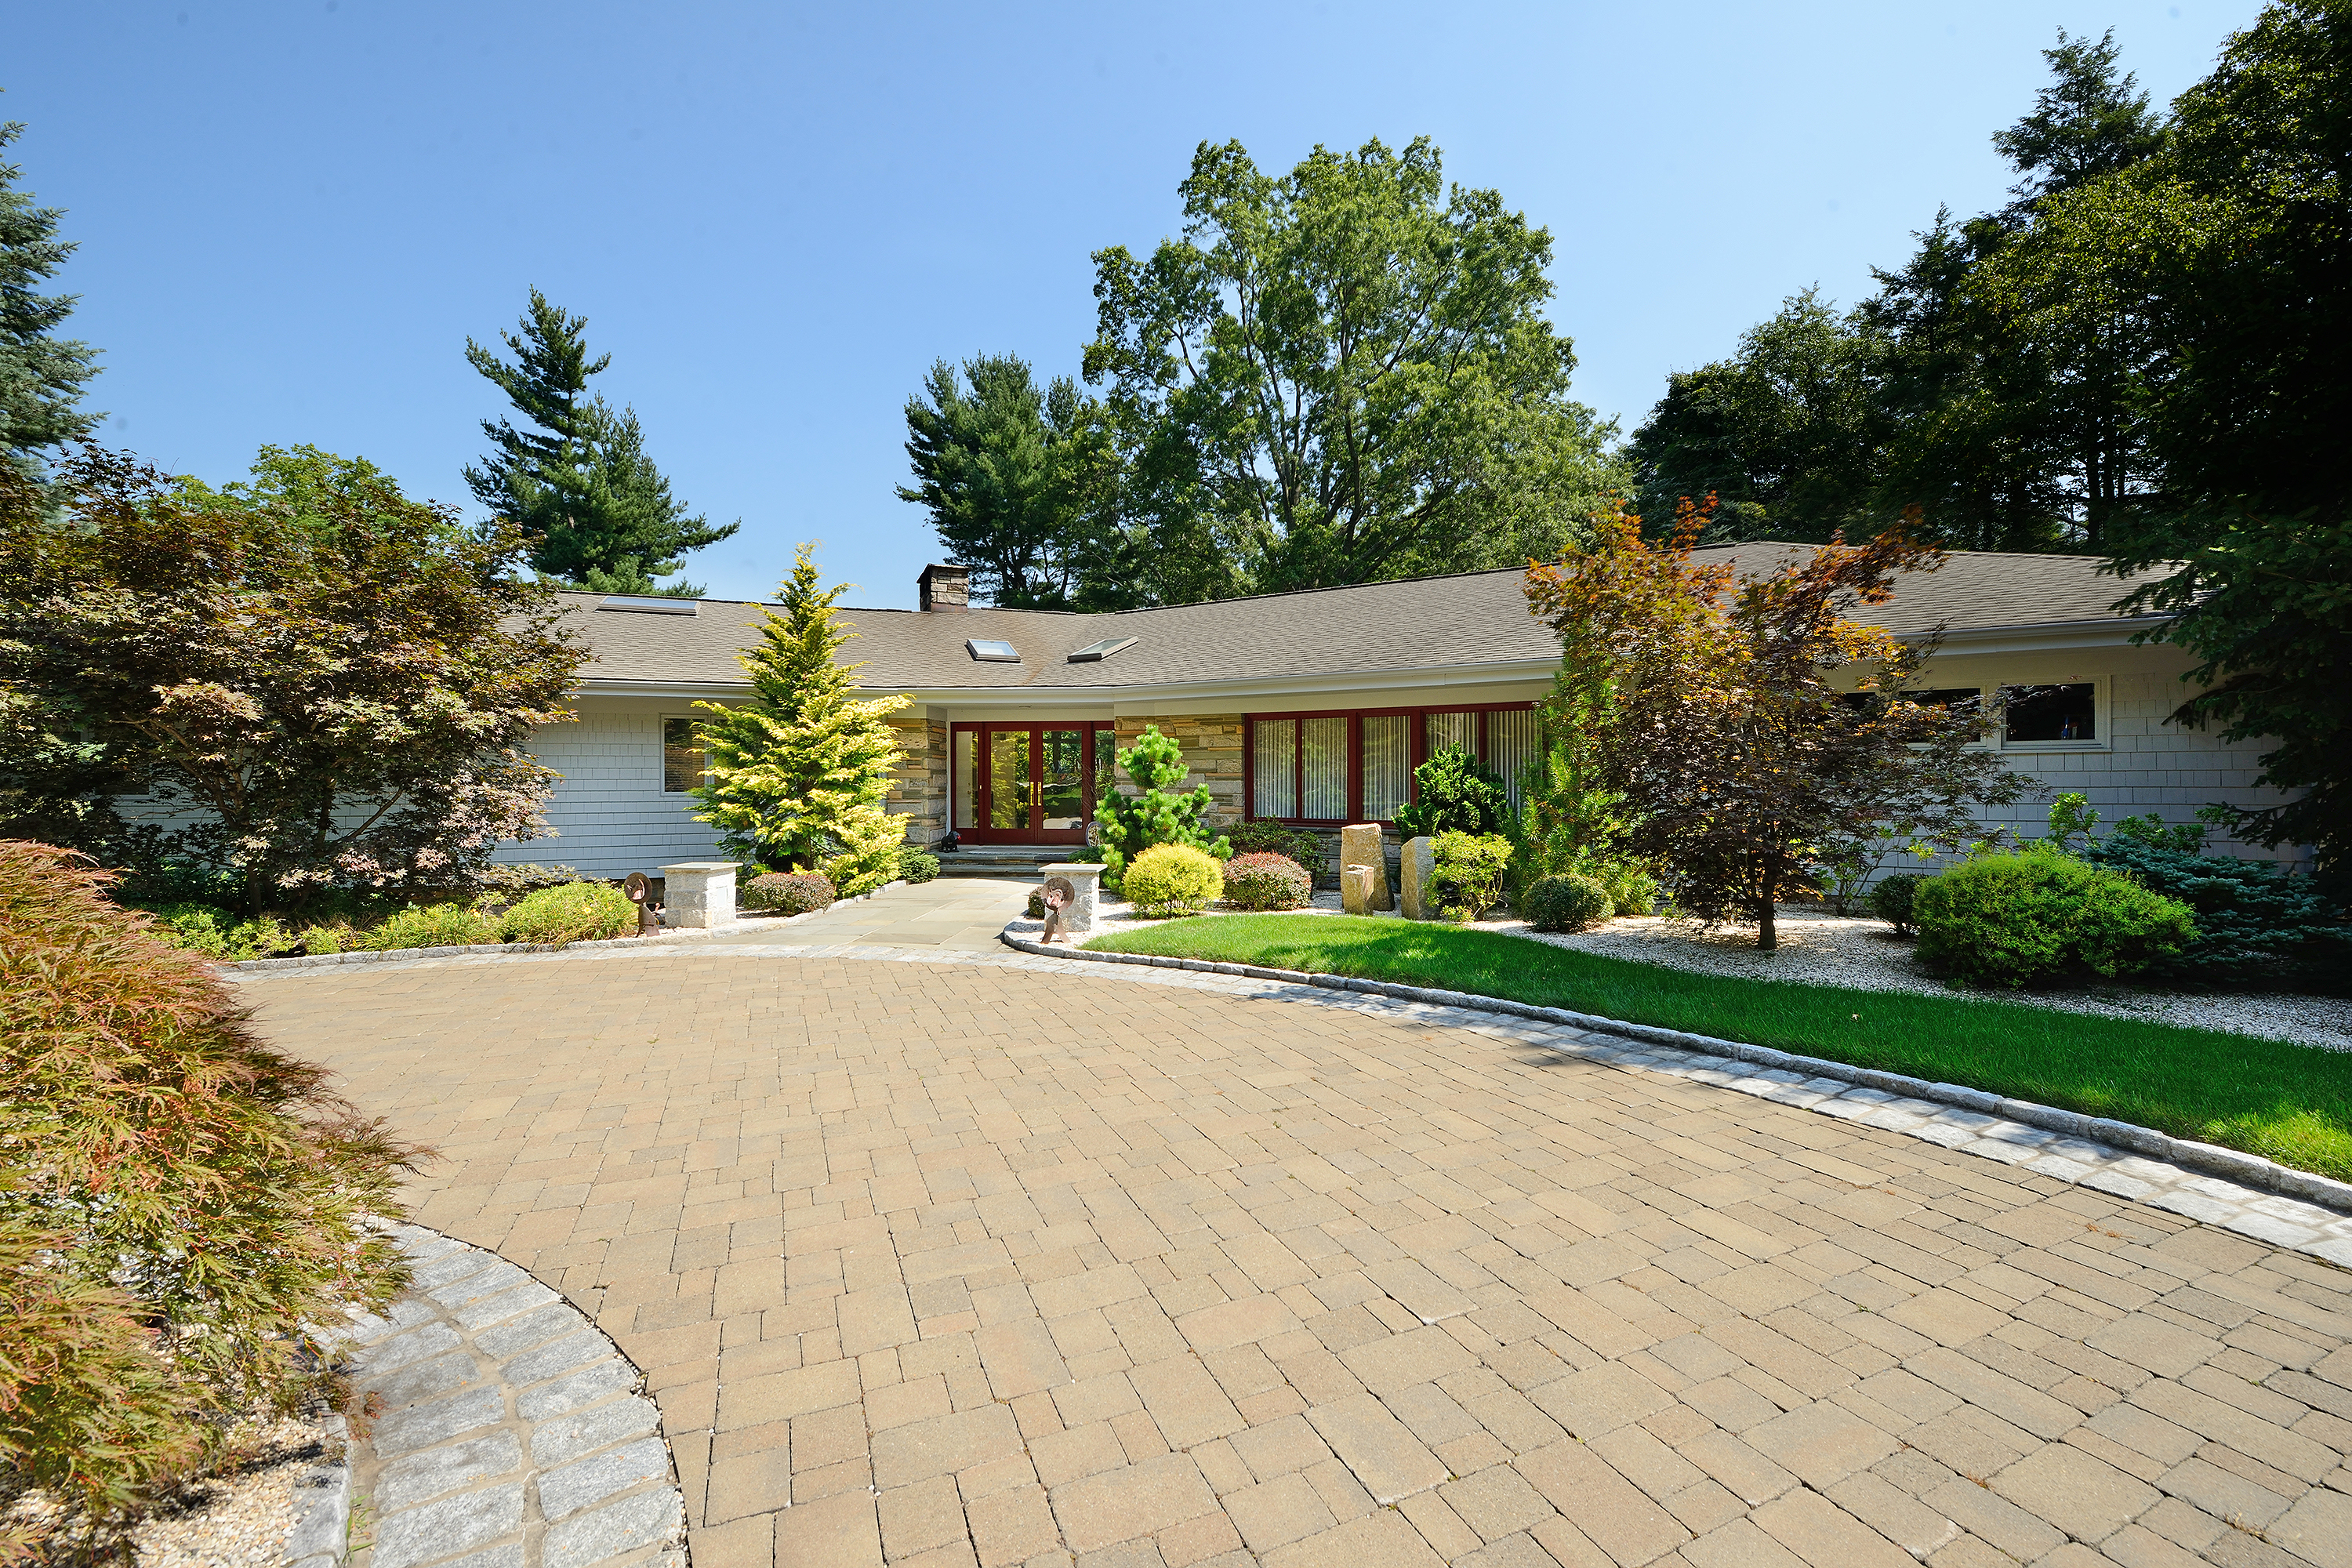 Single Family Home for Sale at Architecturally exciting residence 9 Pilgrim Road Rye, New York 10580 United States